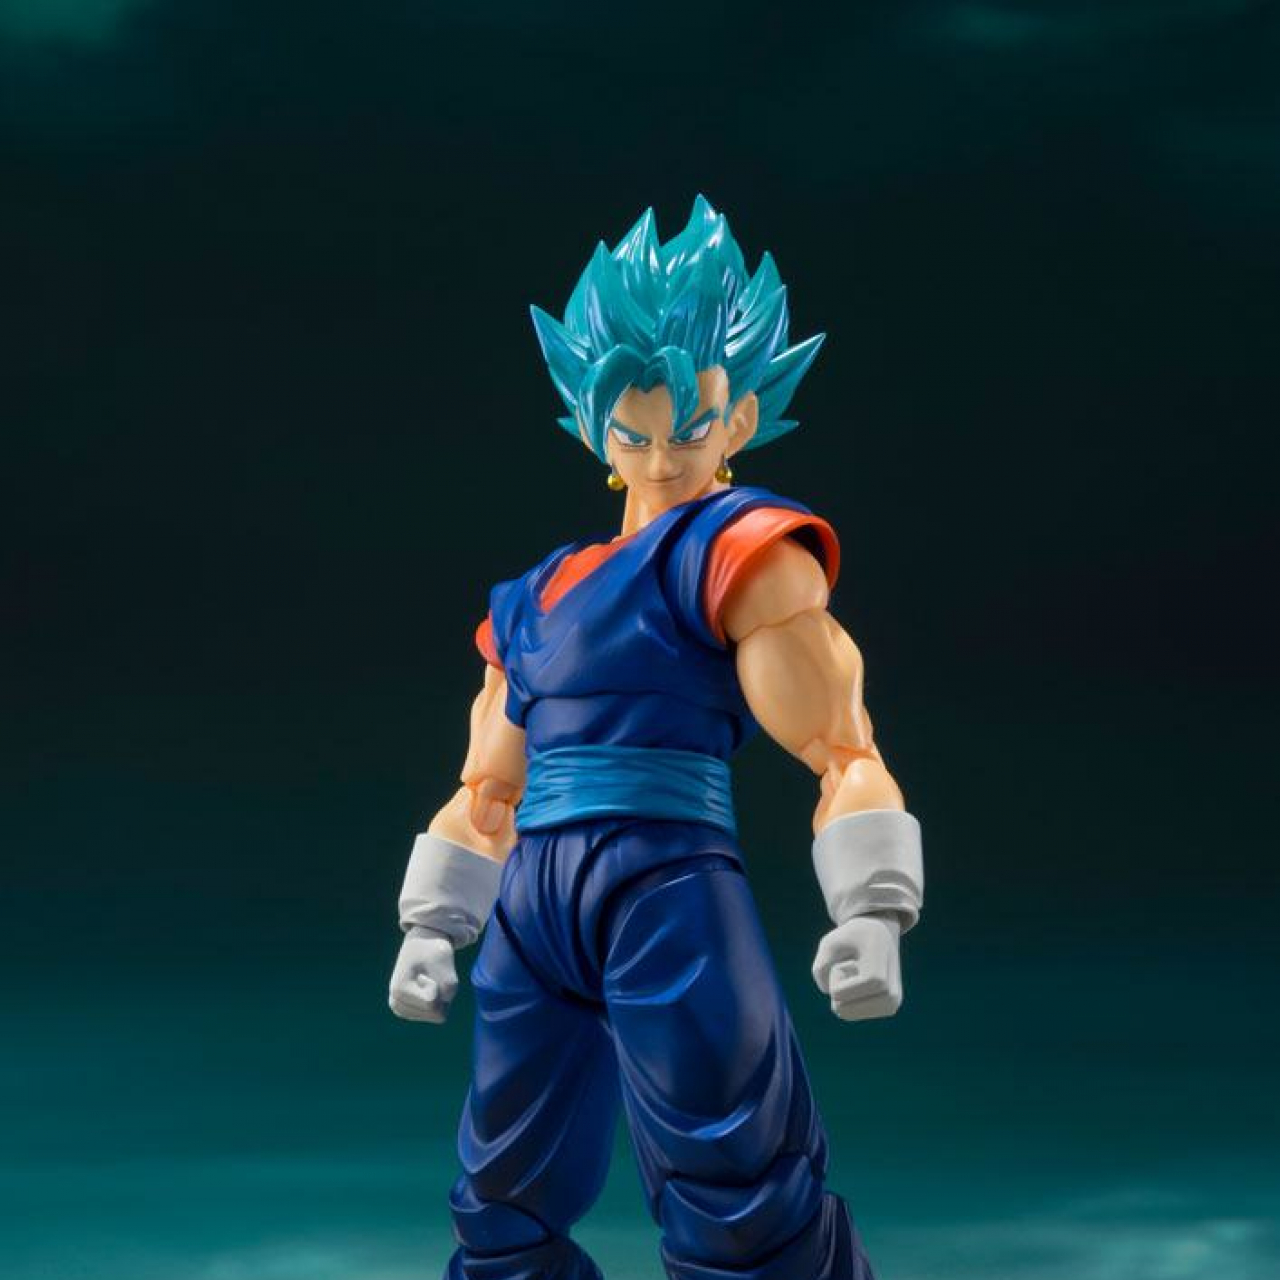 Dragon Ball Super S.H. Figuarts Action Figure Super Saiyan God Super Saiyan Vegito Super 14 cm